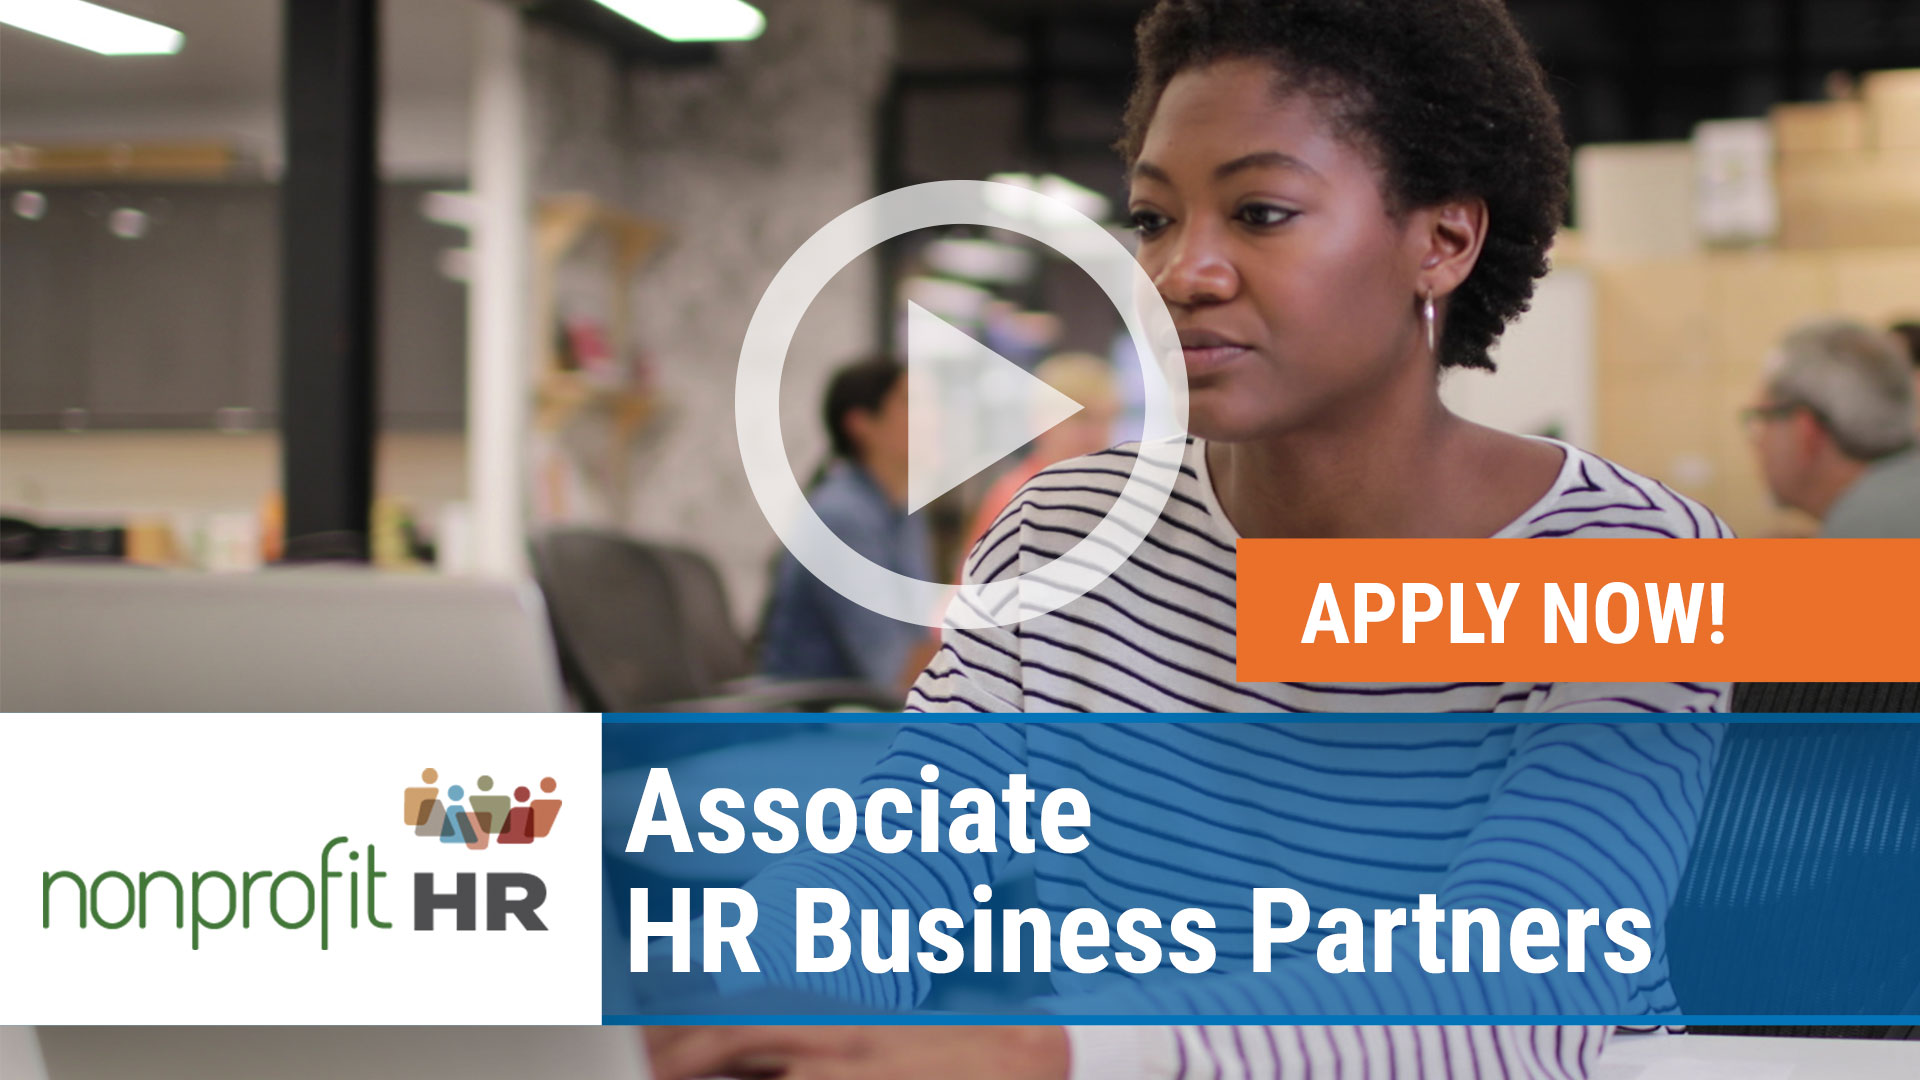 Watch our careers video for available job opening Associate HR Business Partners in Washington/ DC and Chicago, Illinois